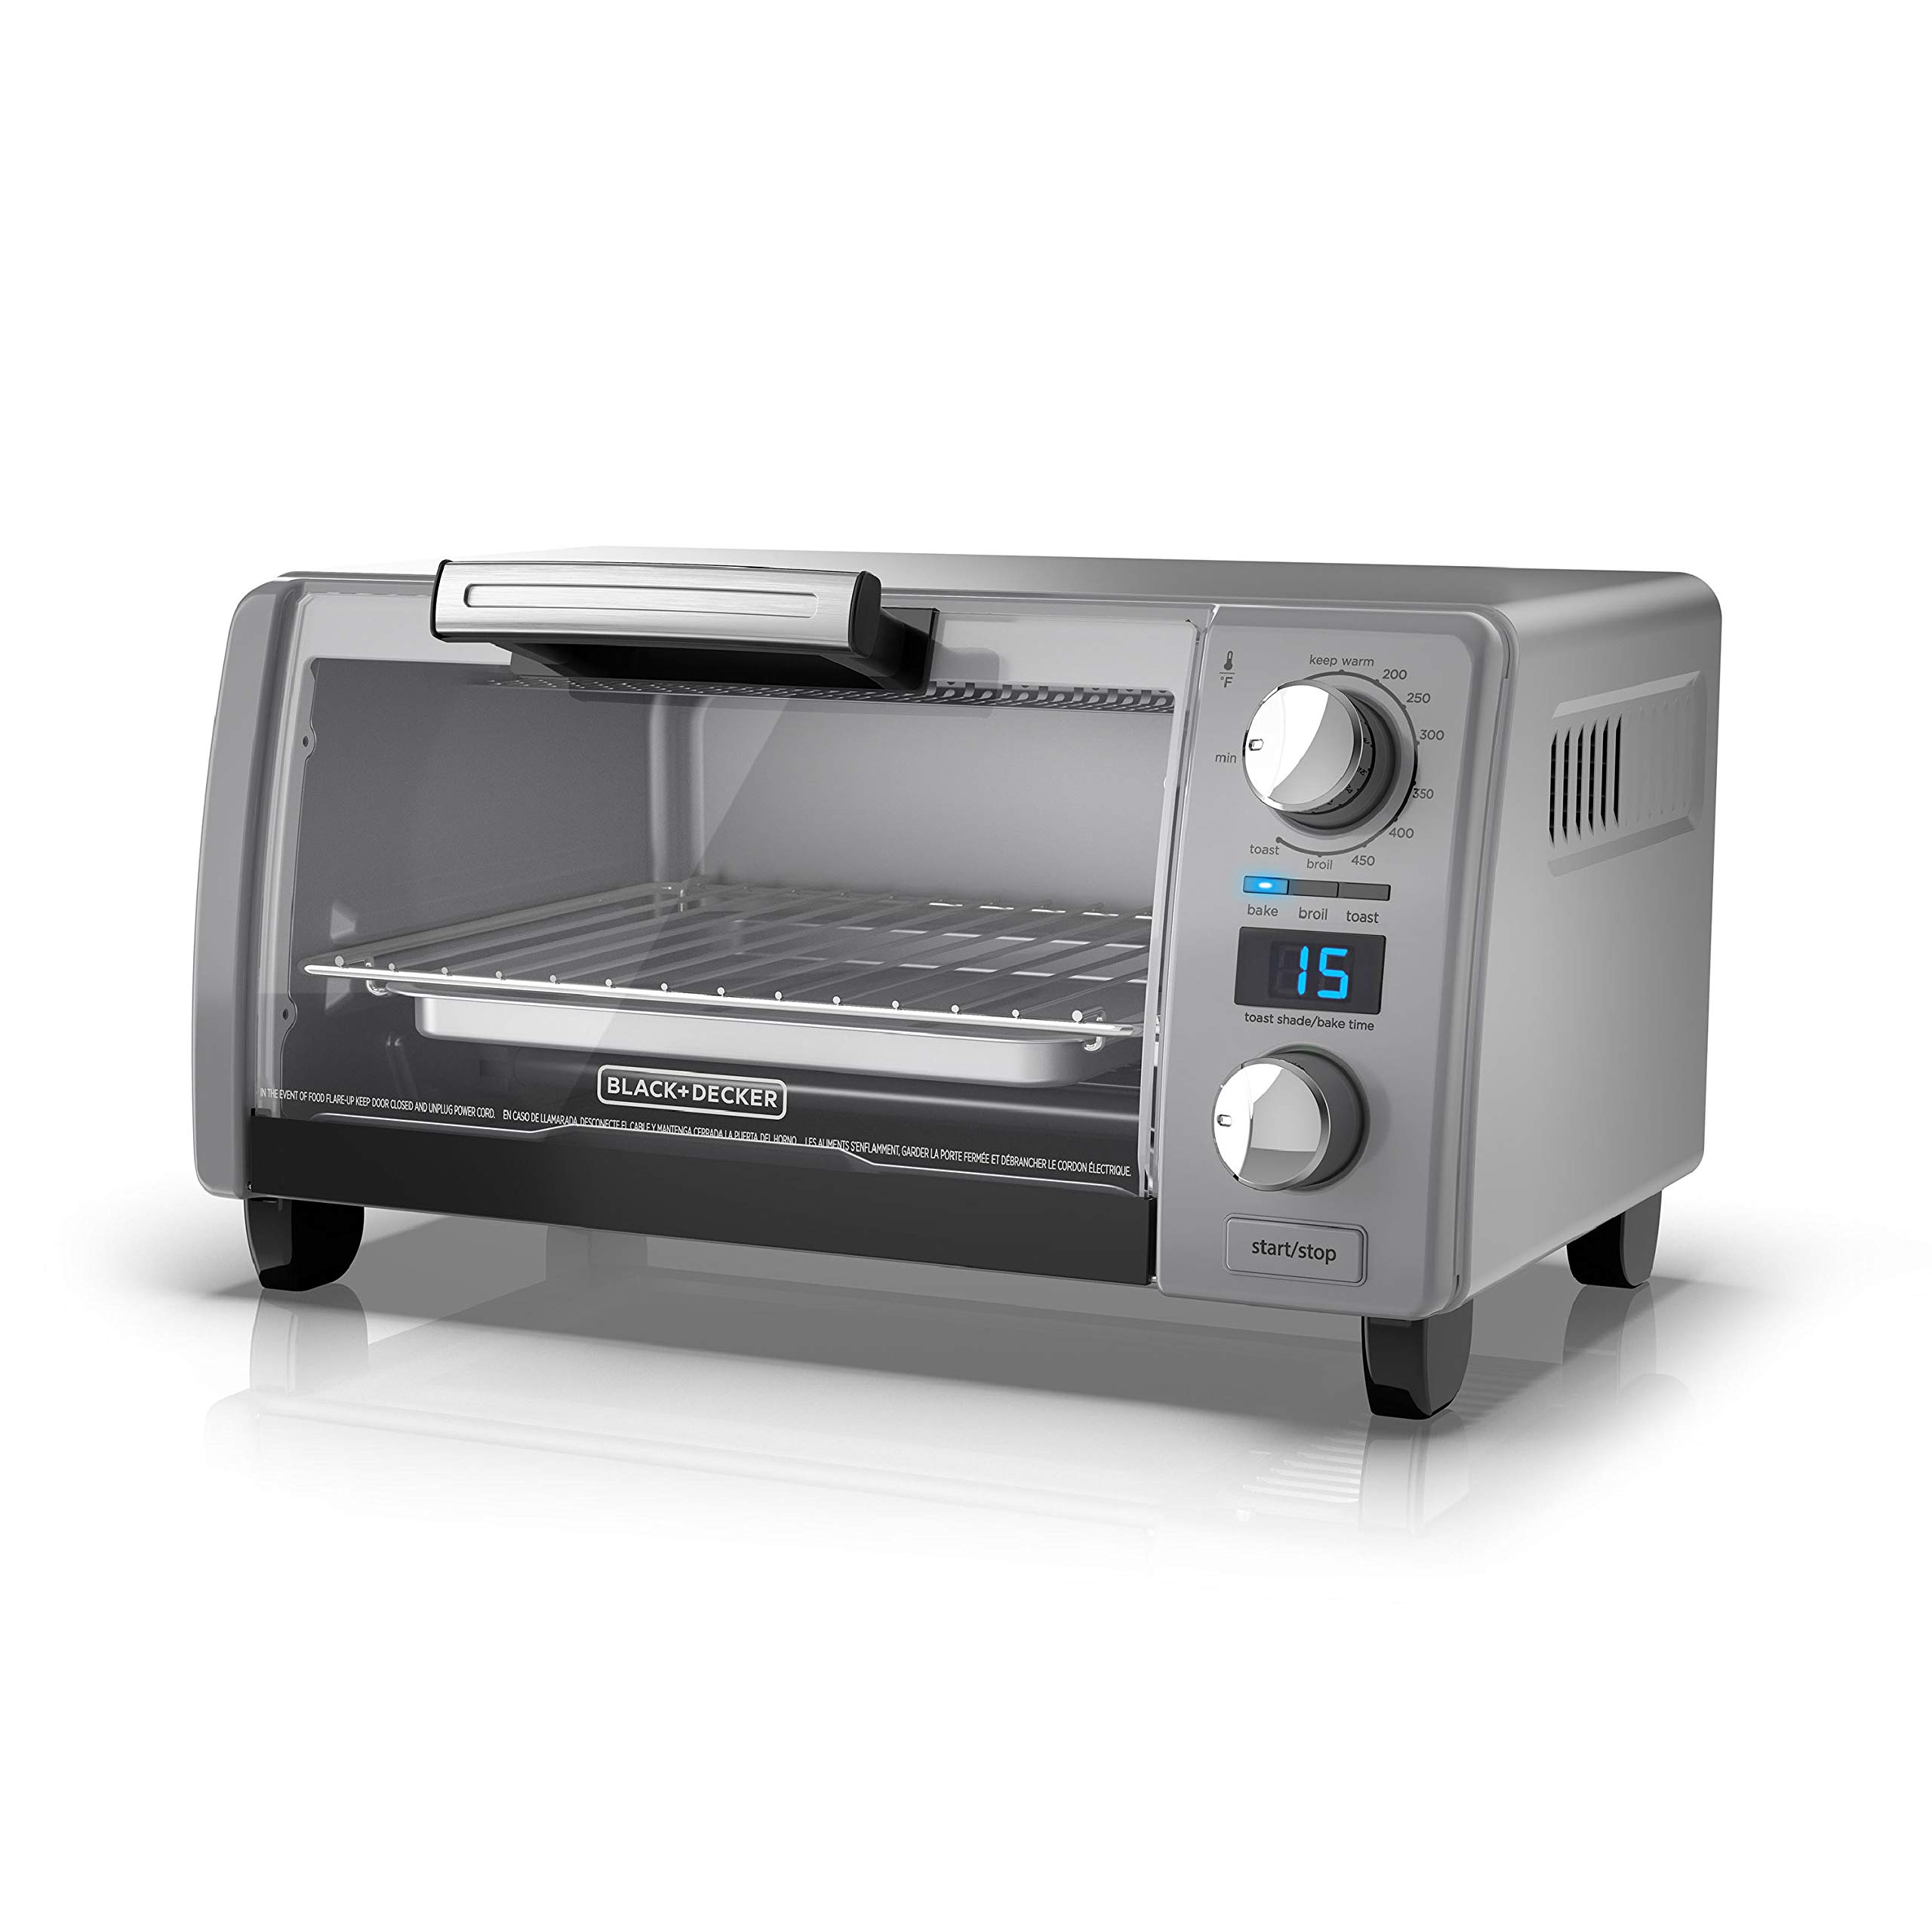 BLACK+DECKER TOD1770G 4-Slice Natural Convection Digital Toaster Oven, Grey, 15.3'' x 9.8'' x 7'', Gray by BLACK+DECKER